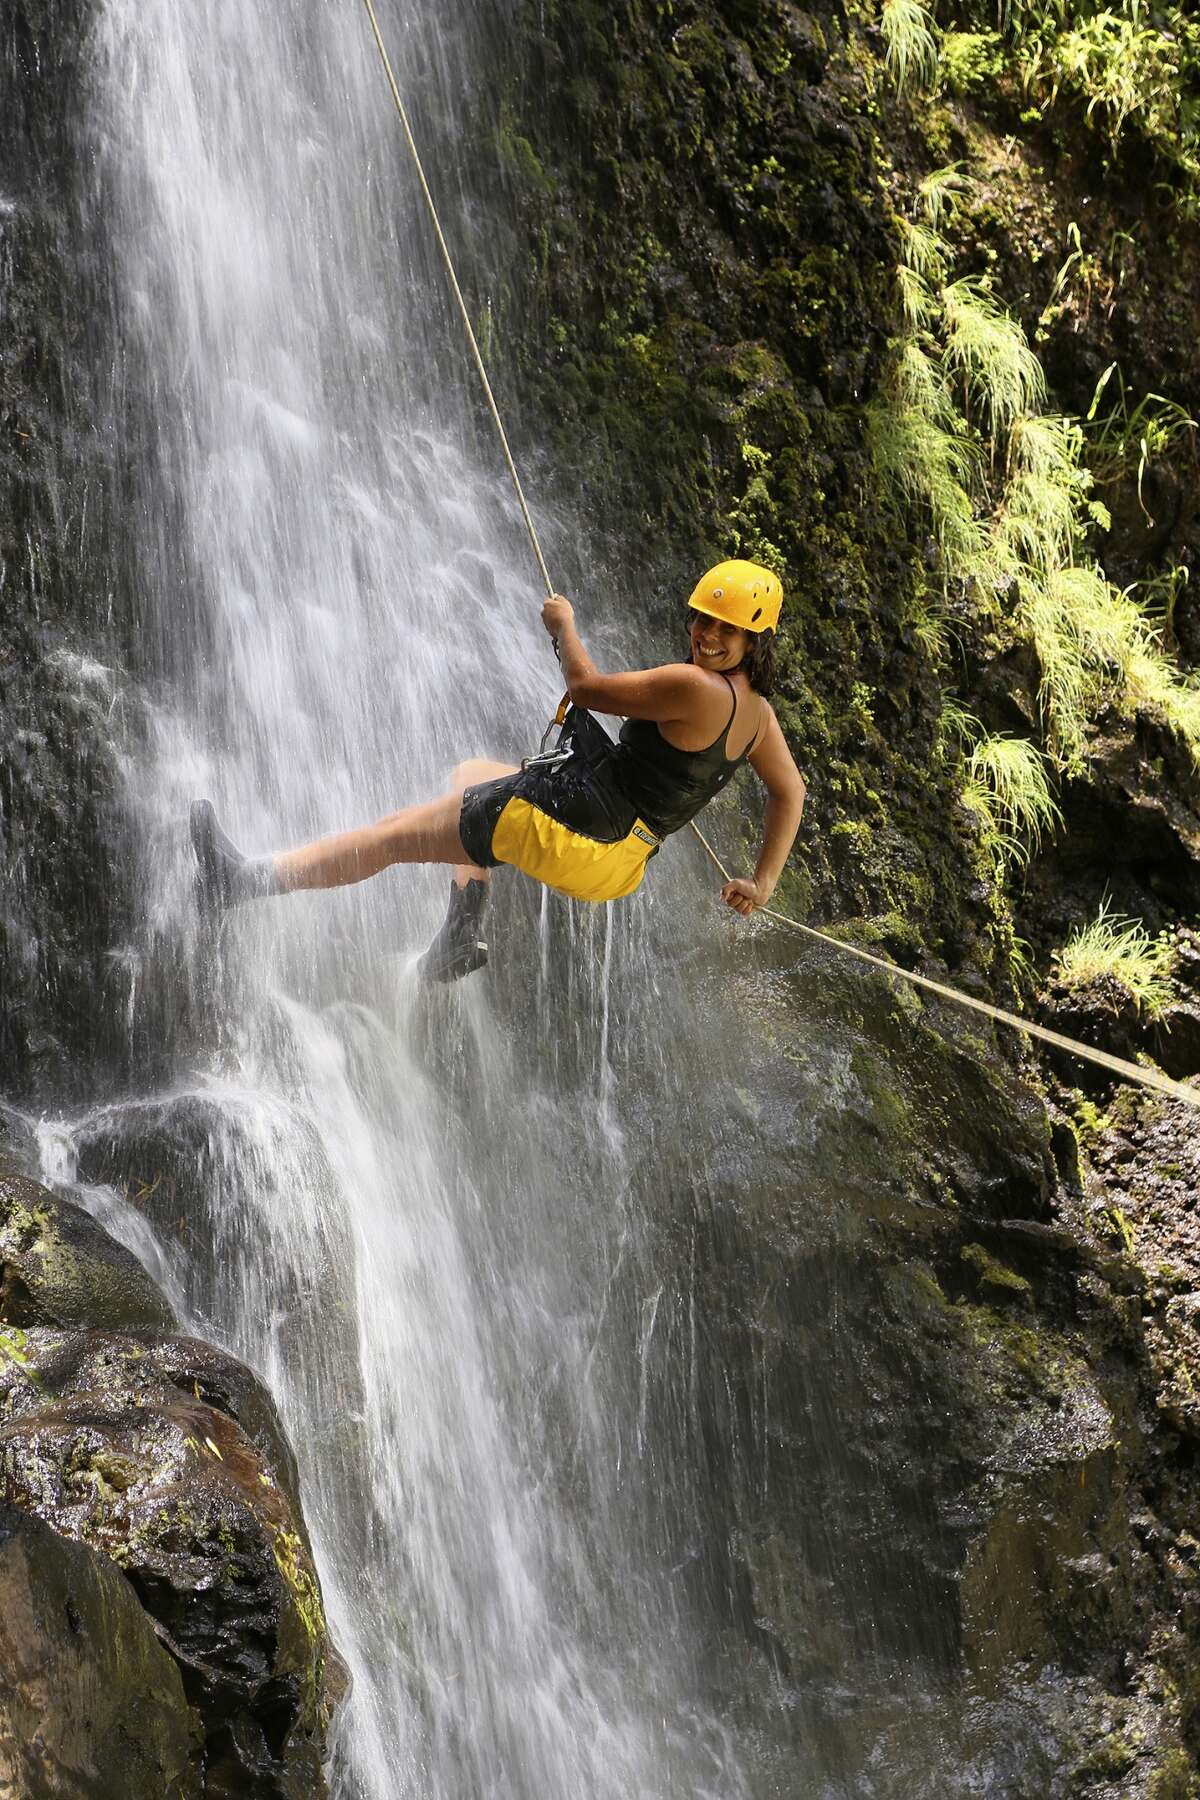 Walk on waterfalls: Rappel Maui has brought the sport of canyoneering, also known as abseiling, to Hawaii. Rappel down two waterfalls - 50 feet and 30 feet tall - in a privately owned valley (seen in the original